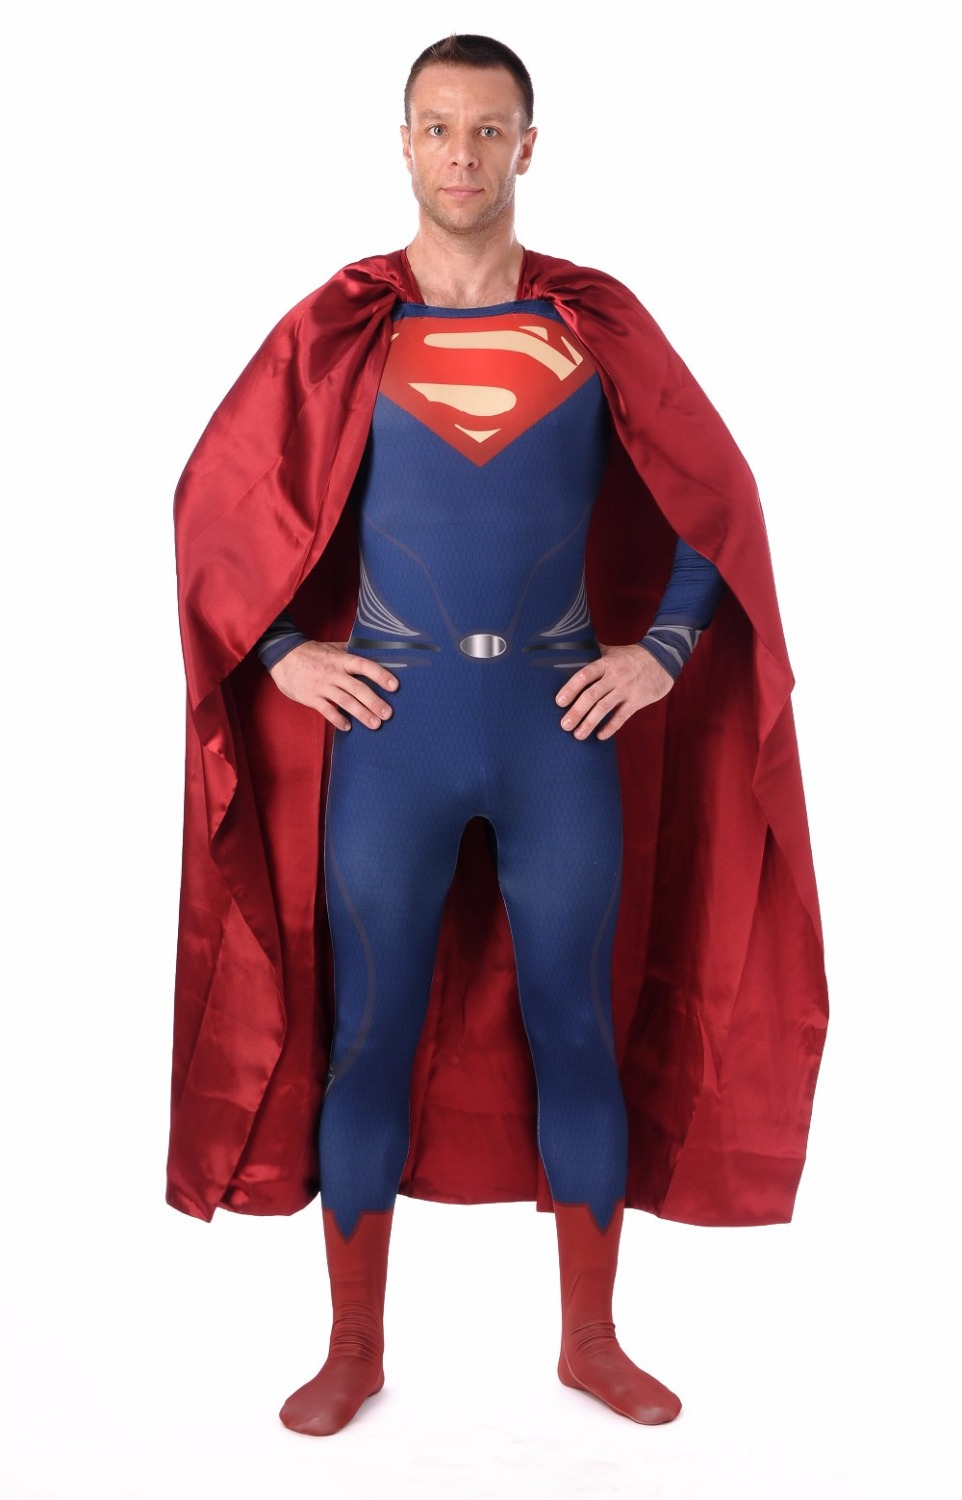 Superman Costume Spandex Zentai Costumes Halloween Costumes for Men Deguisement Catsuit Fancy Dress Jumpsuit with Cape